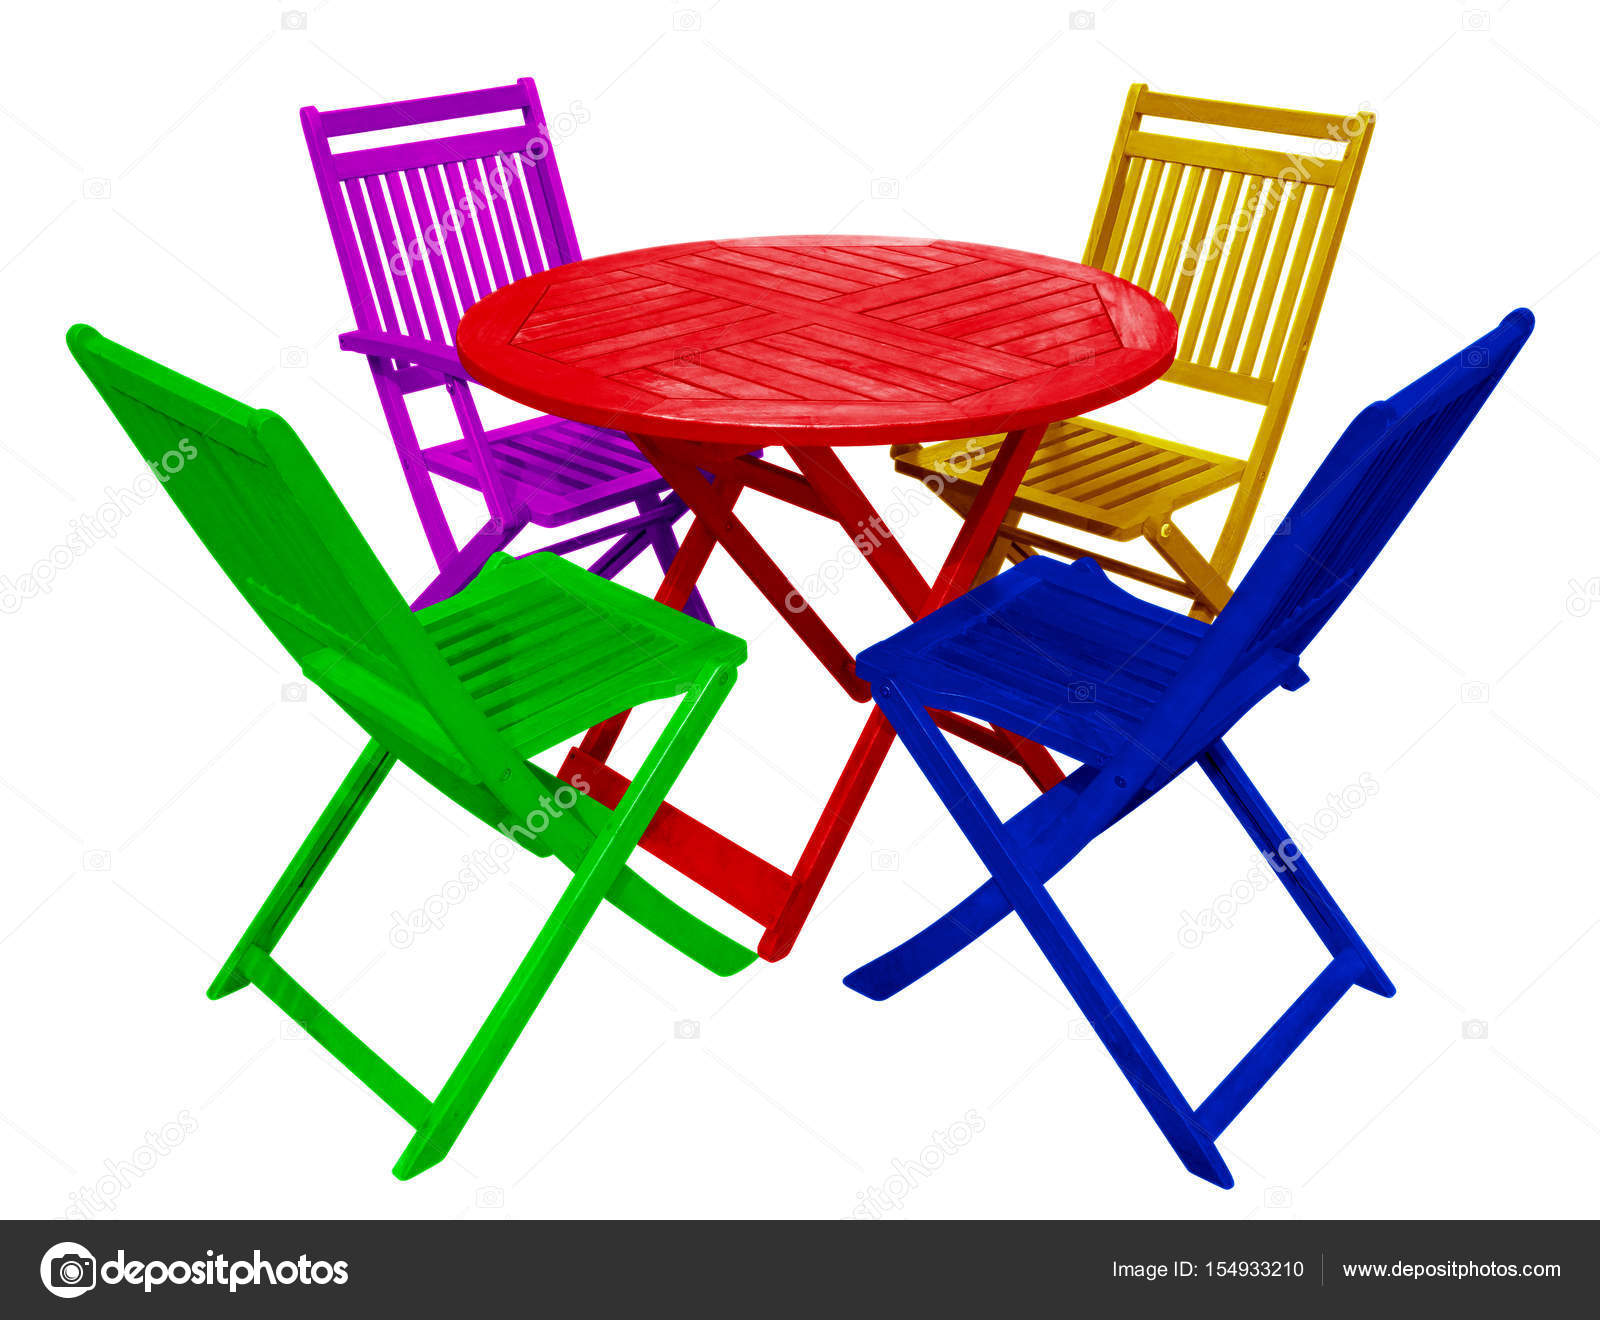 Exceptionnel Colorful Wooden Table And Chairs Isolated On White With Clipping Path U2014  Photo By Venakr